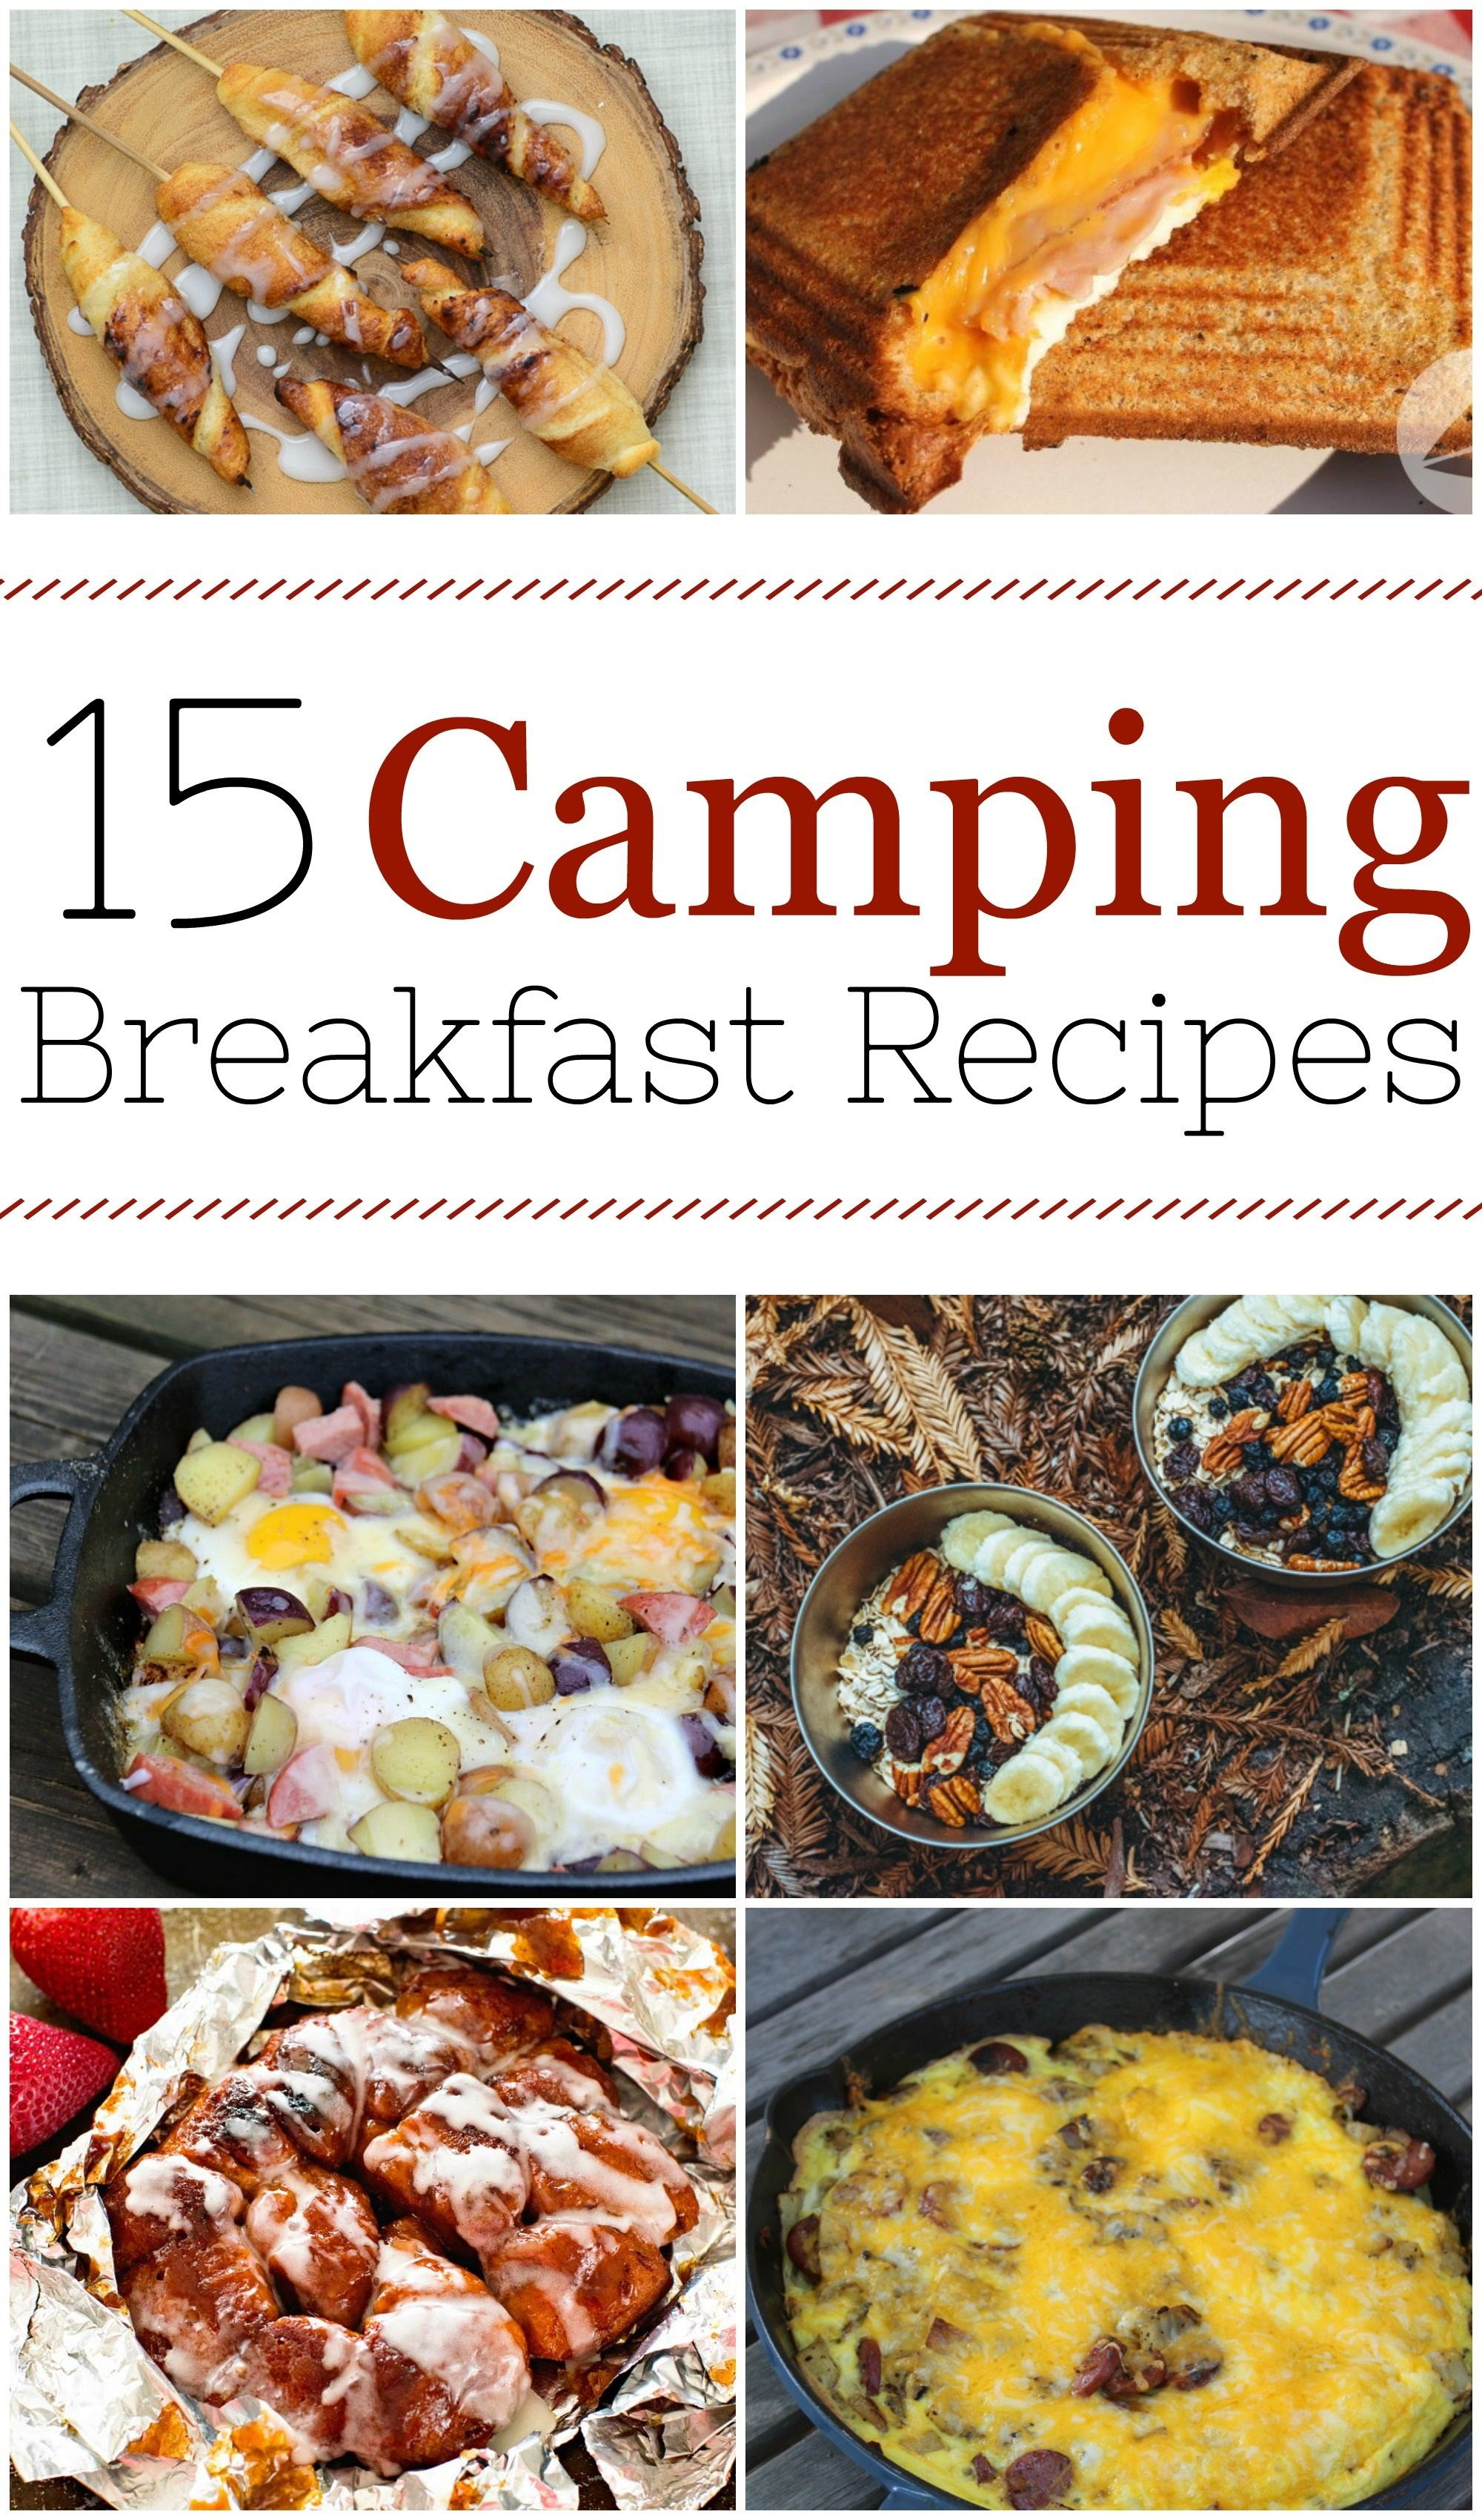 Here Are 15 Easy Camping Breakfast Ideas For Your Next Trip